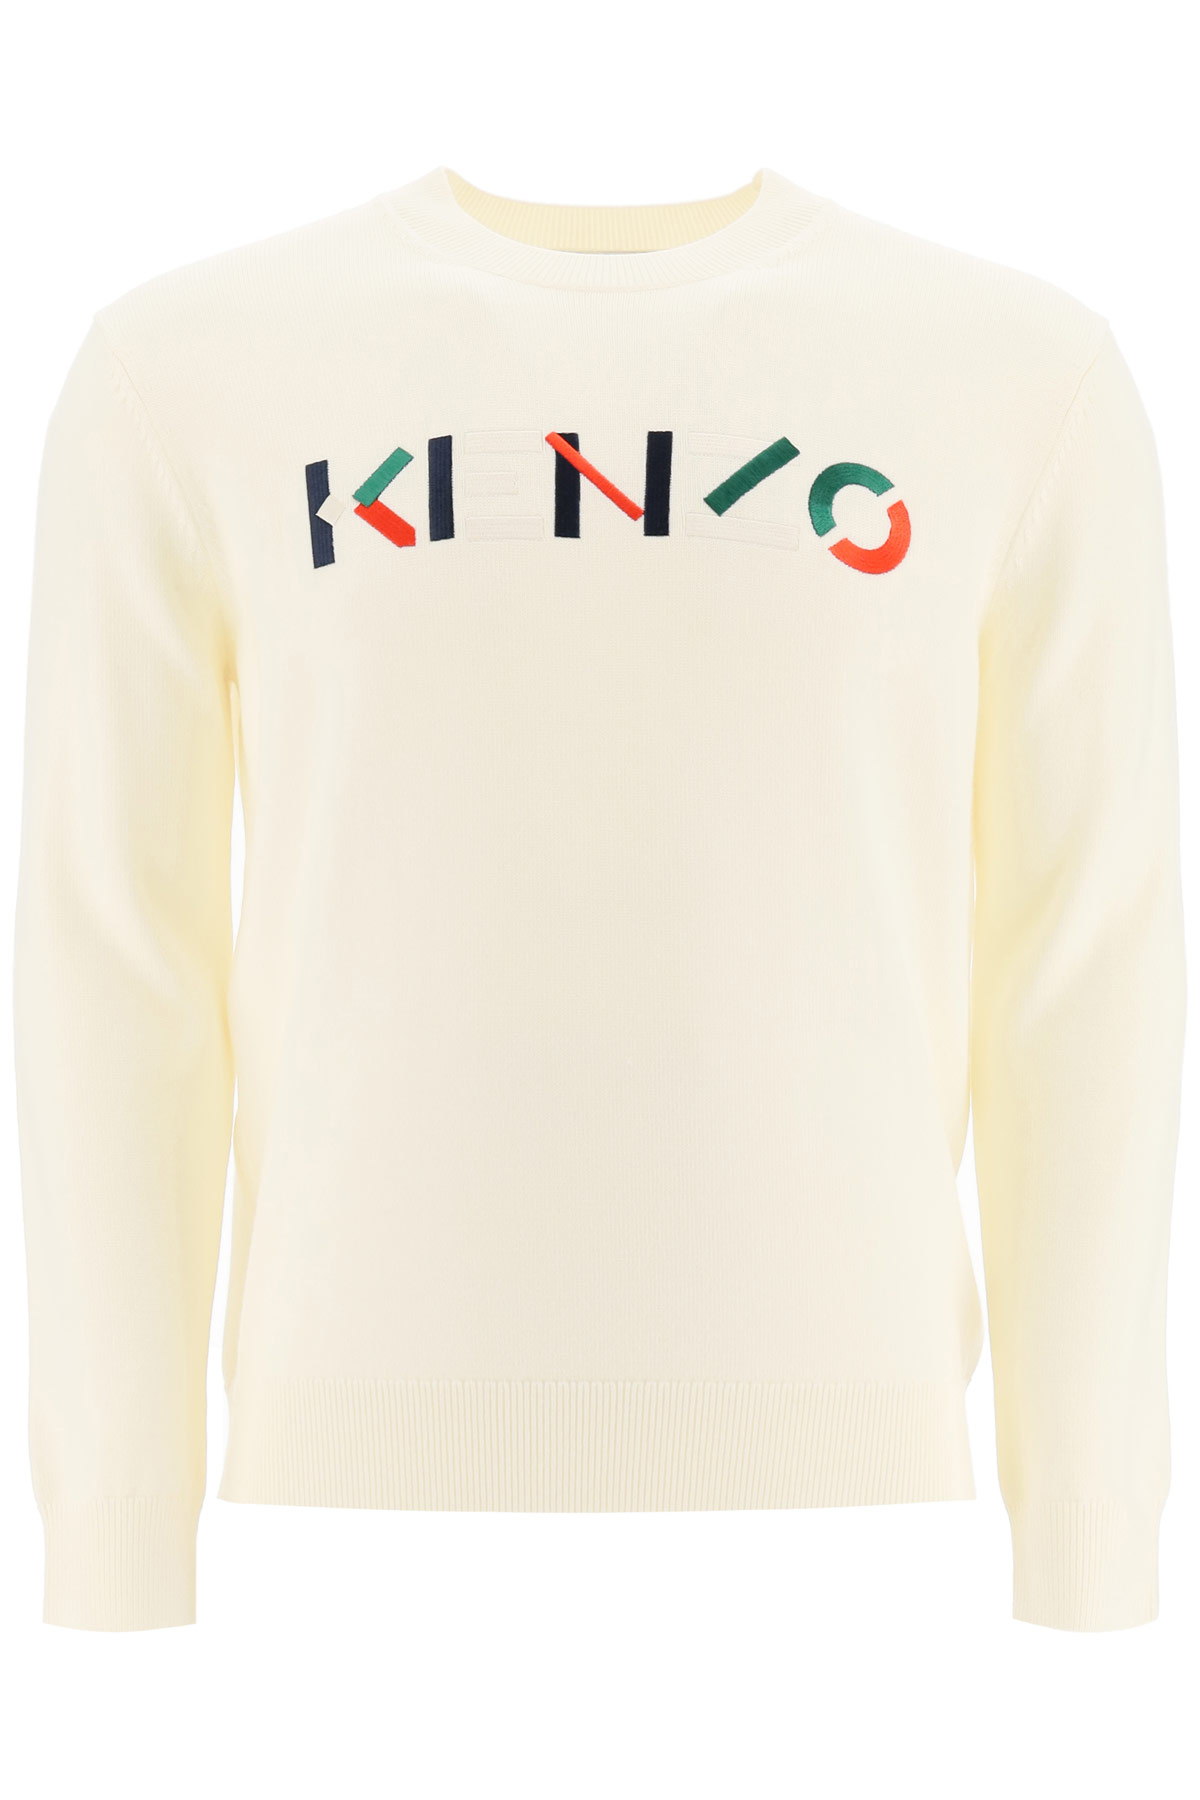 KENZO SWEATER WITH MULTICOLOUR LOGO EMBROIDERY L White Wool